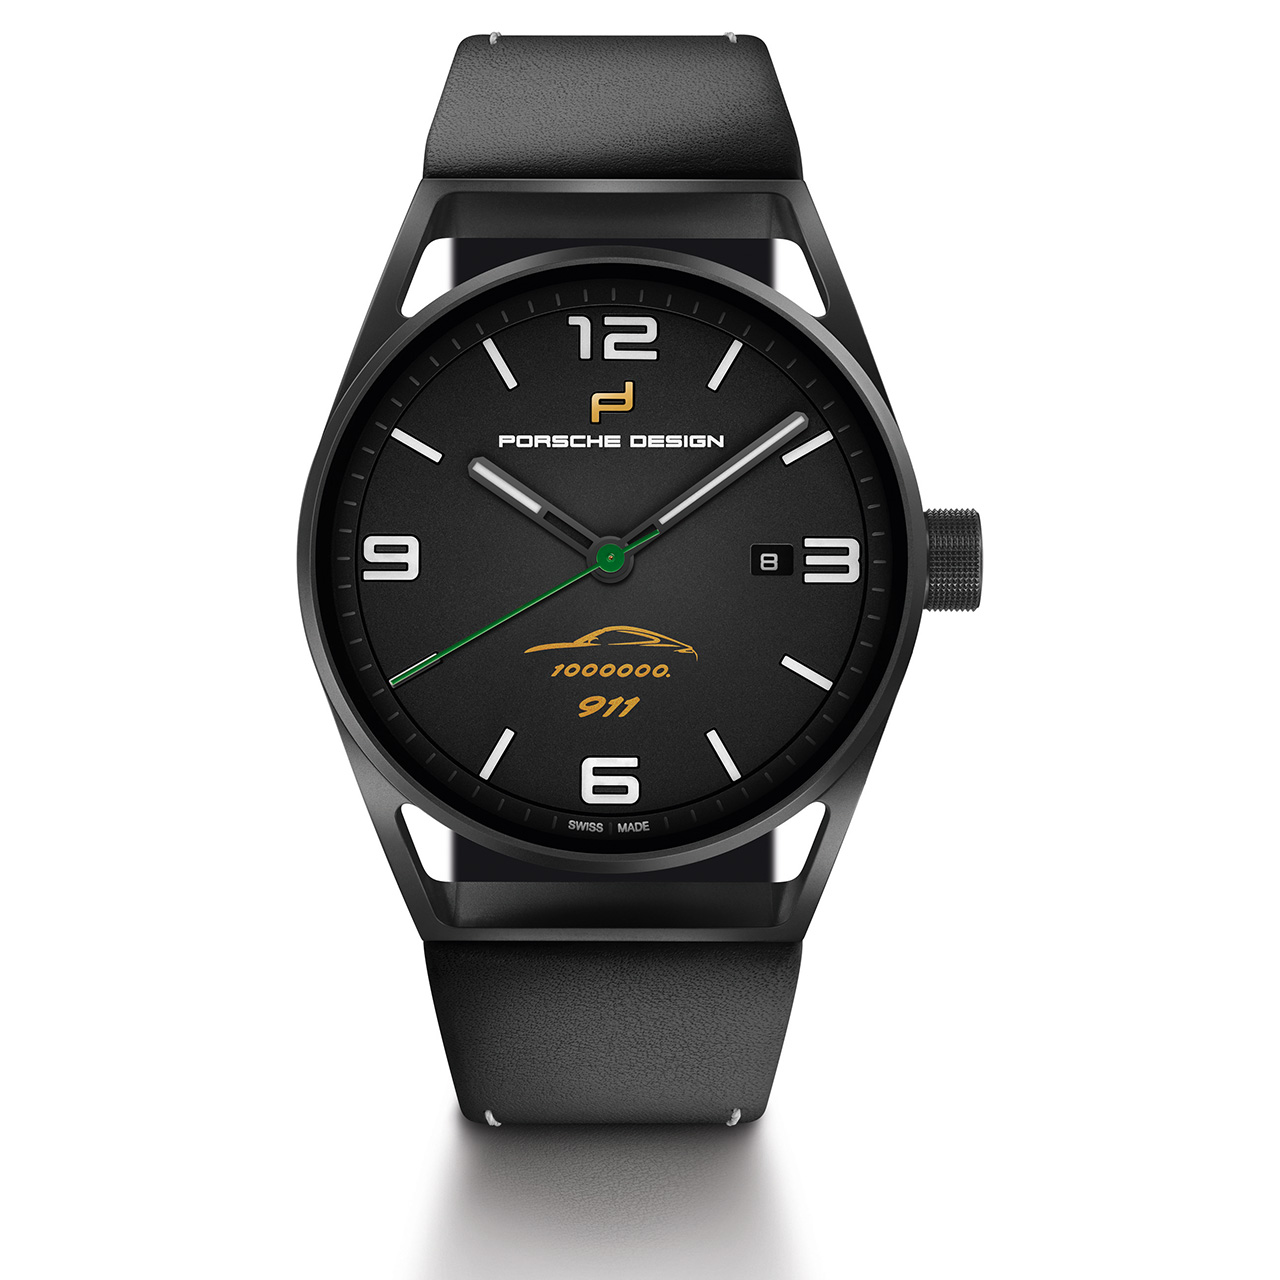 luxusni-hodinky-porsche-design-datetimer-eternity-911-one-millionth-limited-edition